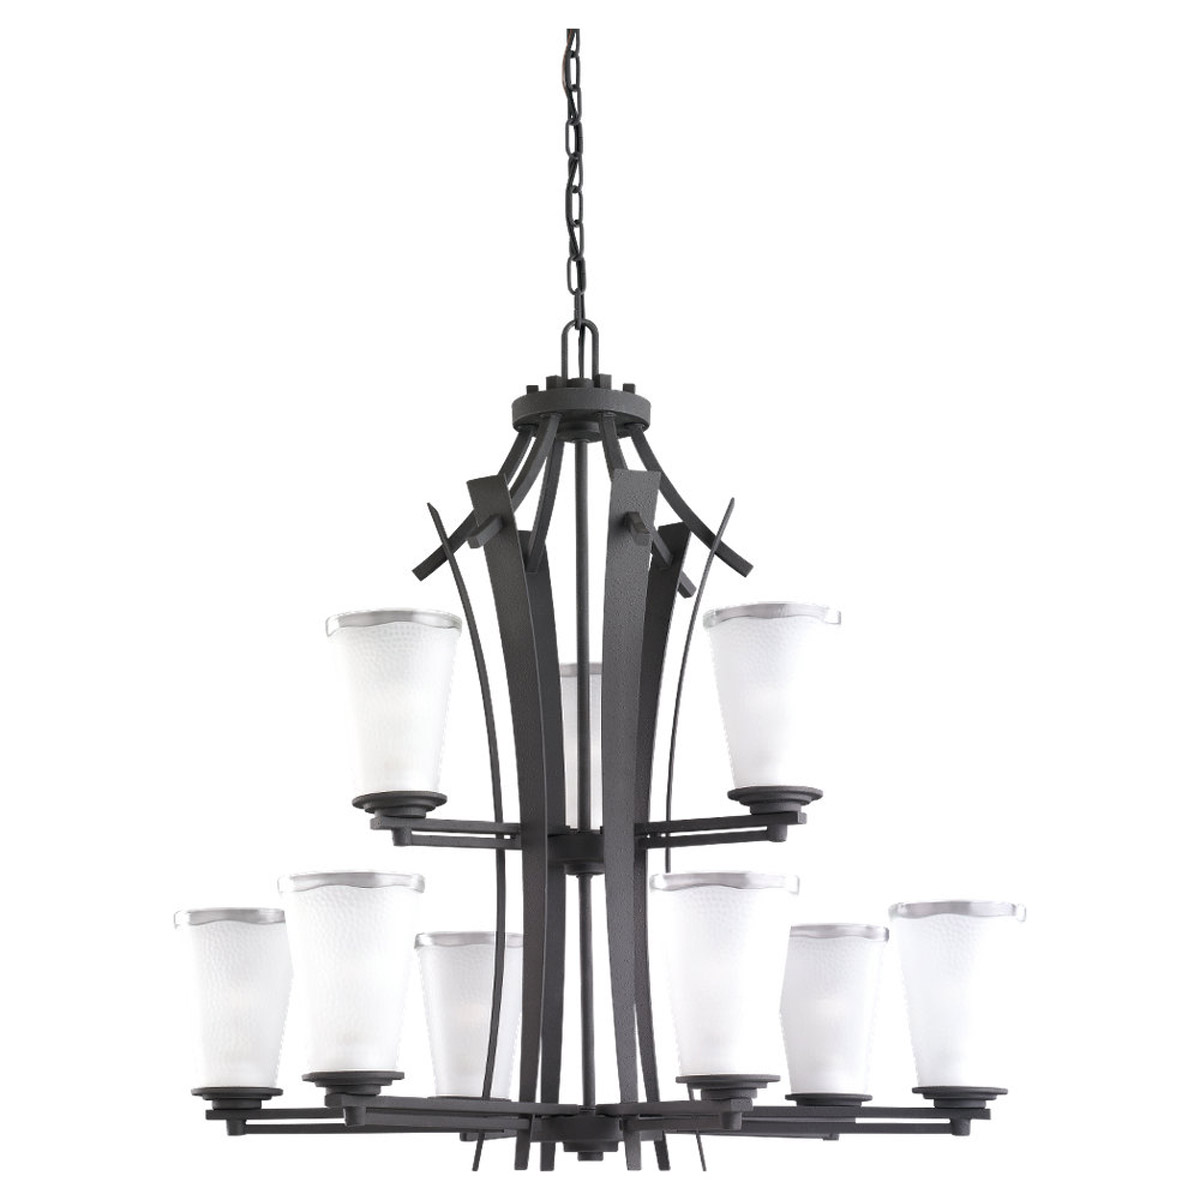 Sea Gull Lighting 59th Street 9 Light Chandelier in Blacksmith 31642-839